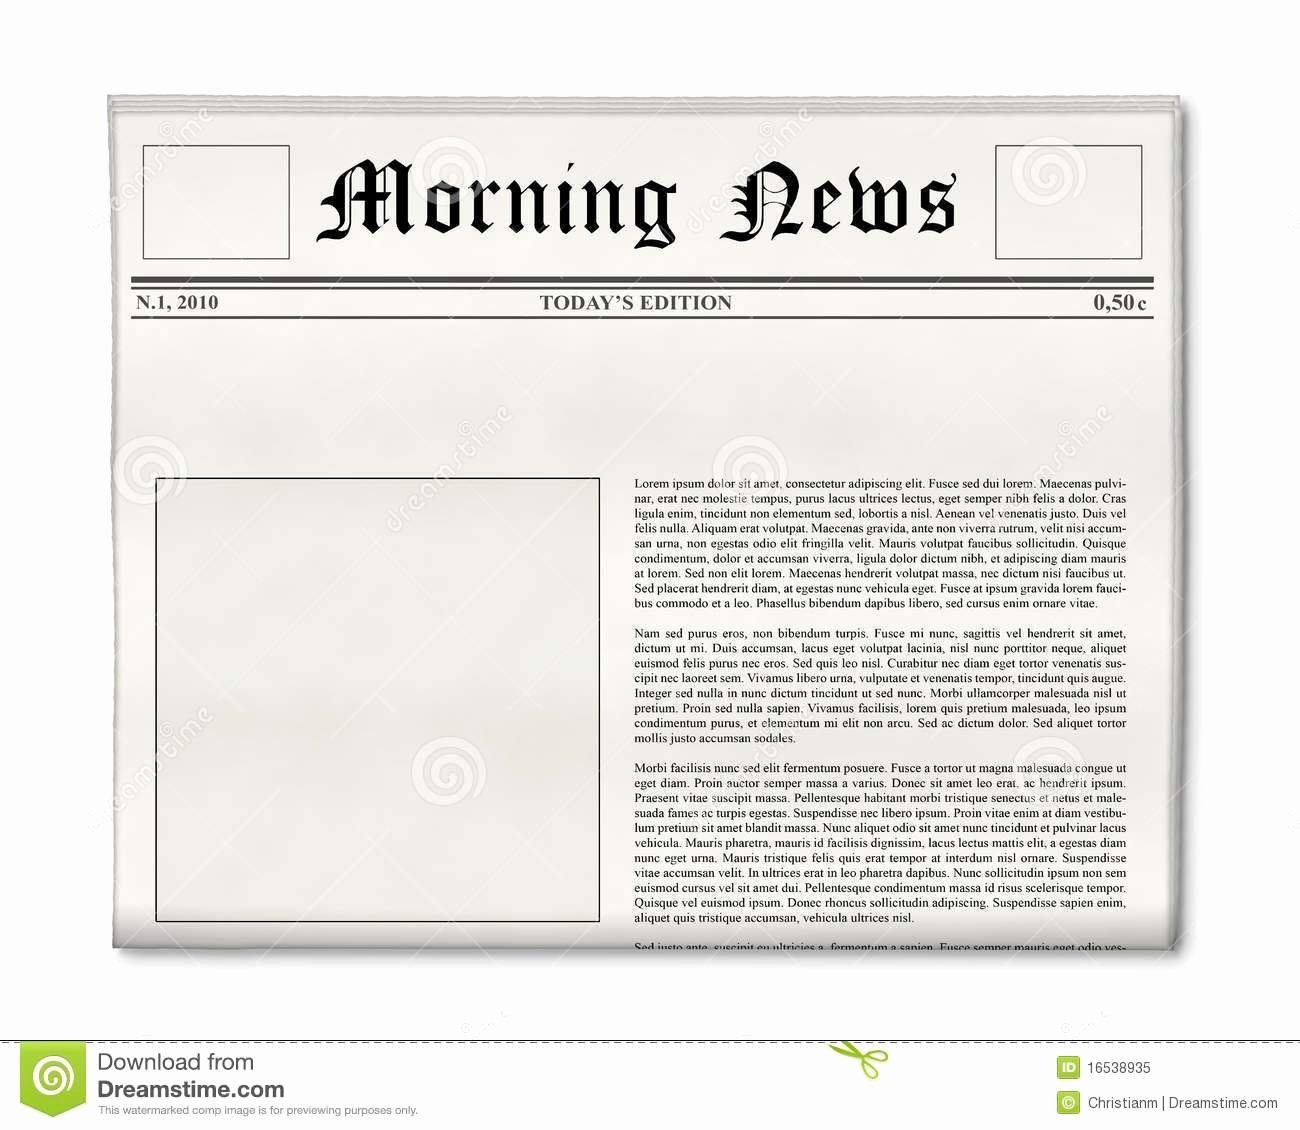 New York Times Newspaper Template Google Docs Awesome Blank Newspaper Layout Google Search